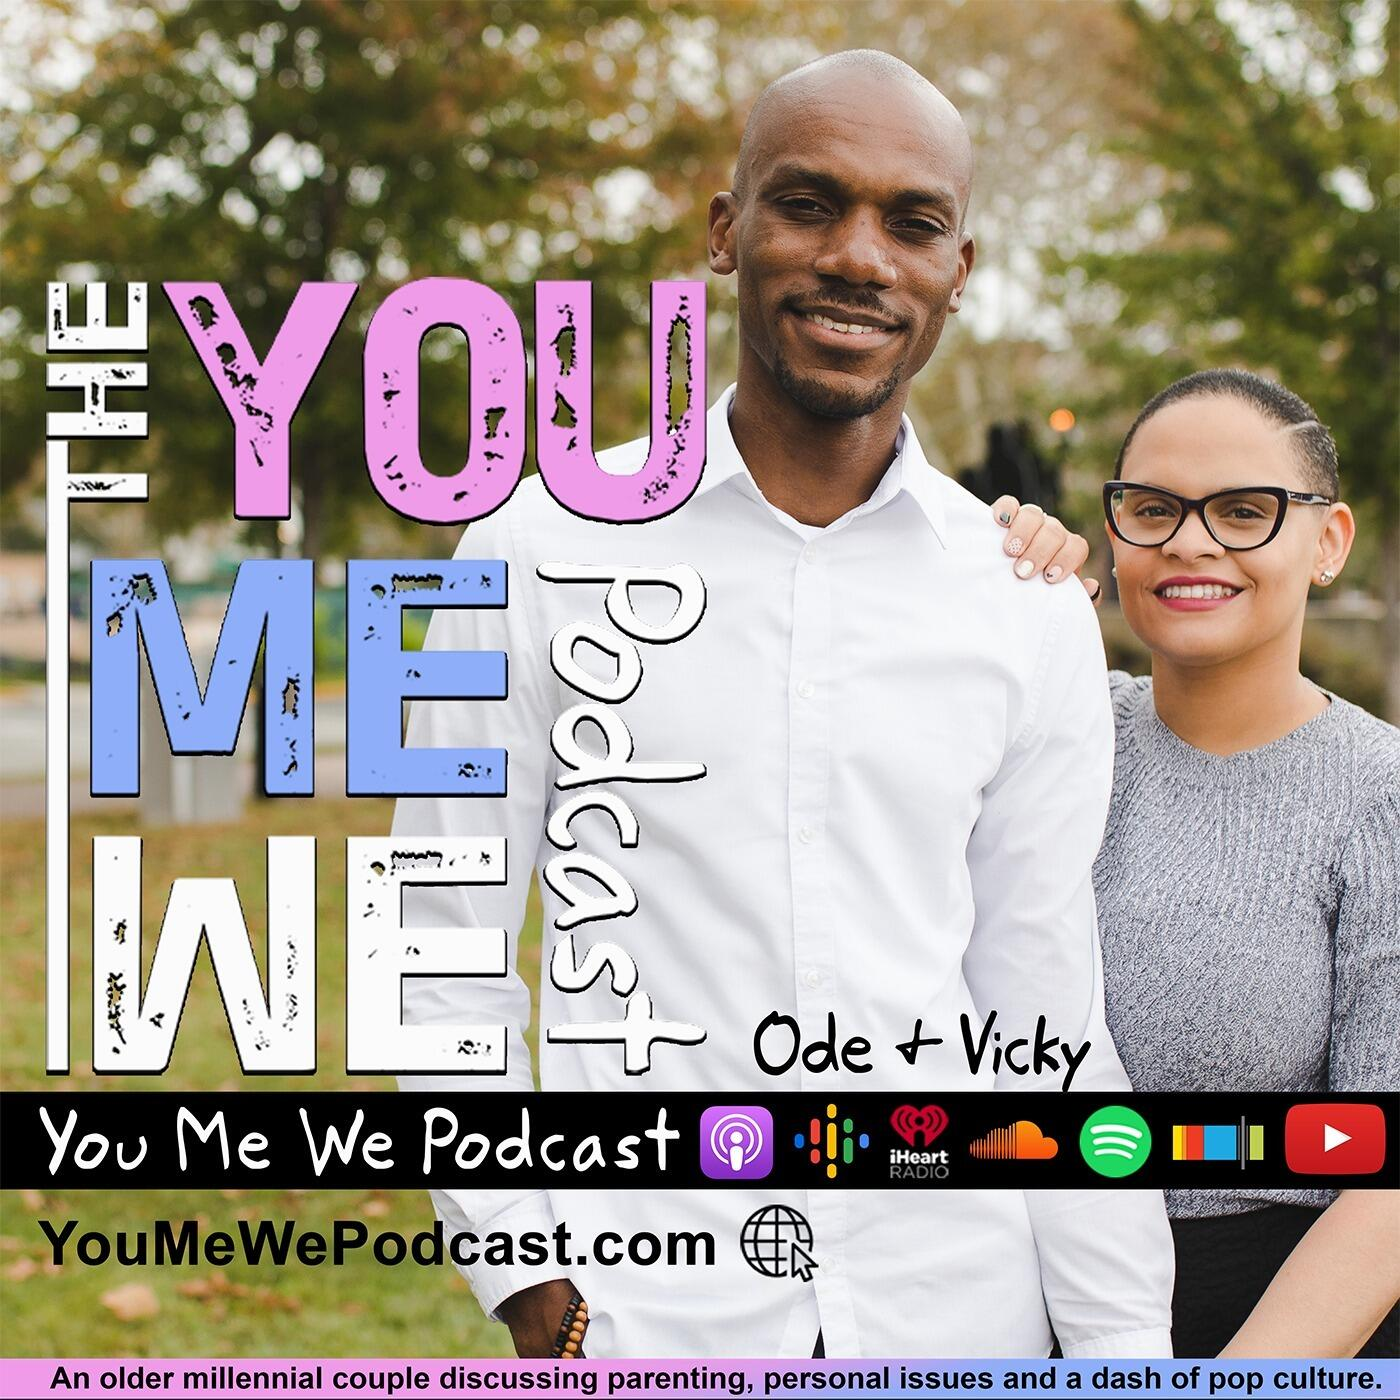 You Me We Podcast